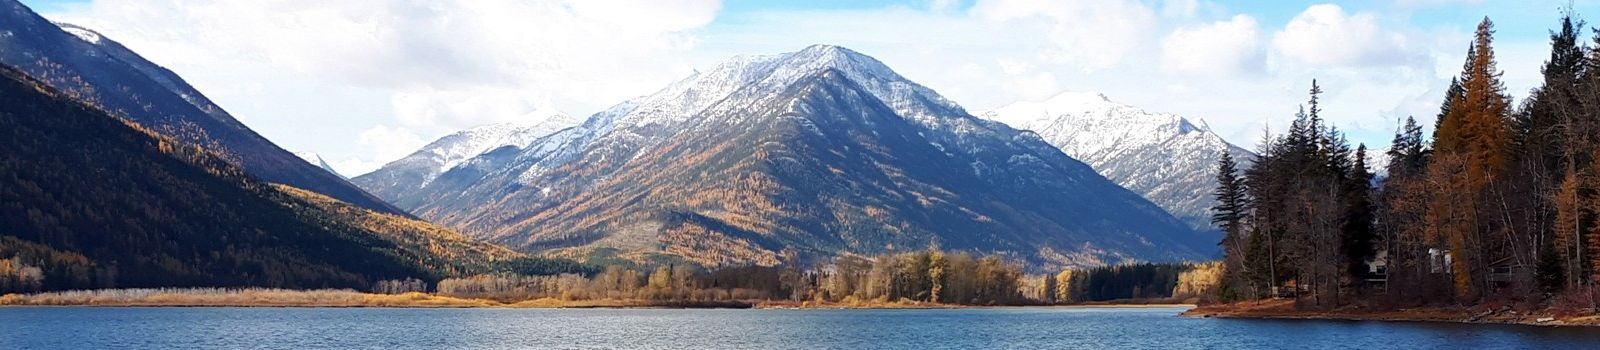 St. Mary's Lake, Abundant Life Pentecostal Assembly, Cranbrook, British Columbia, PAOC